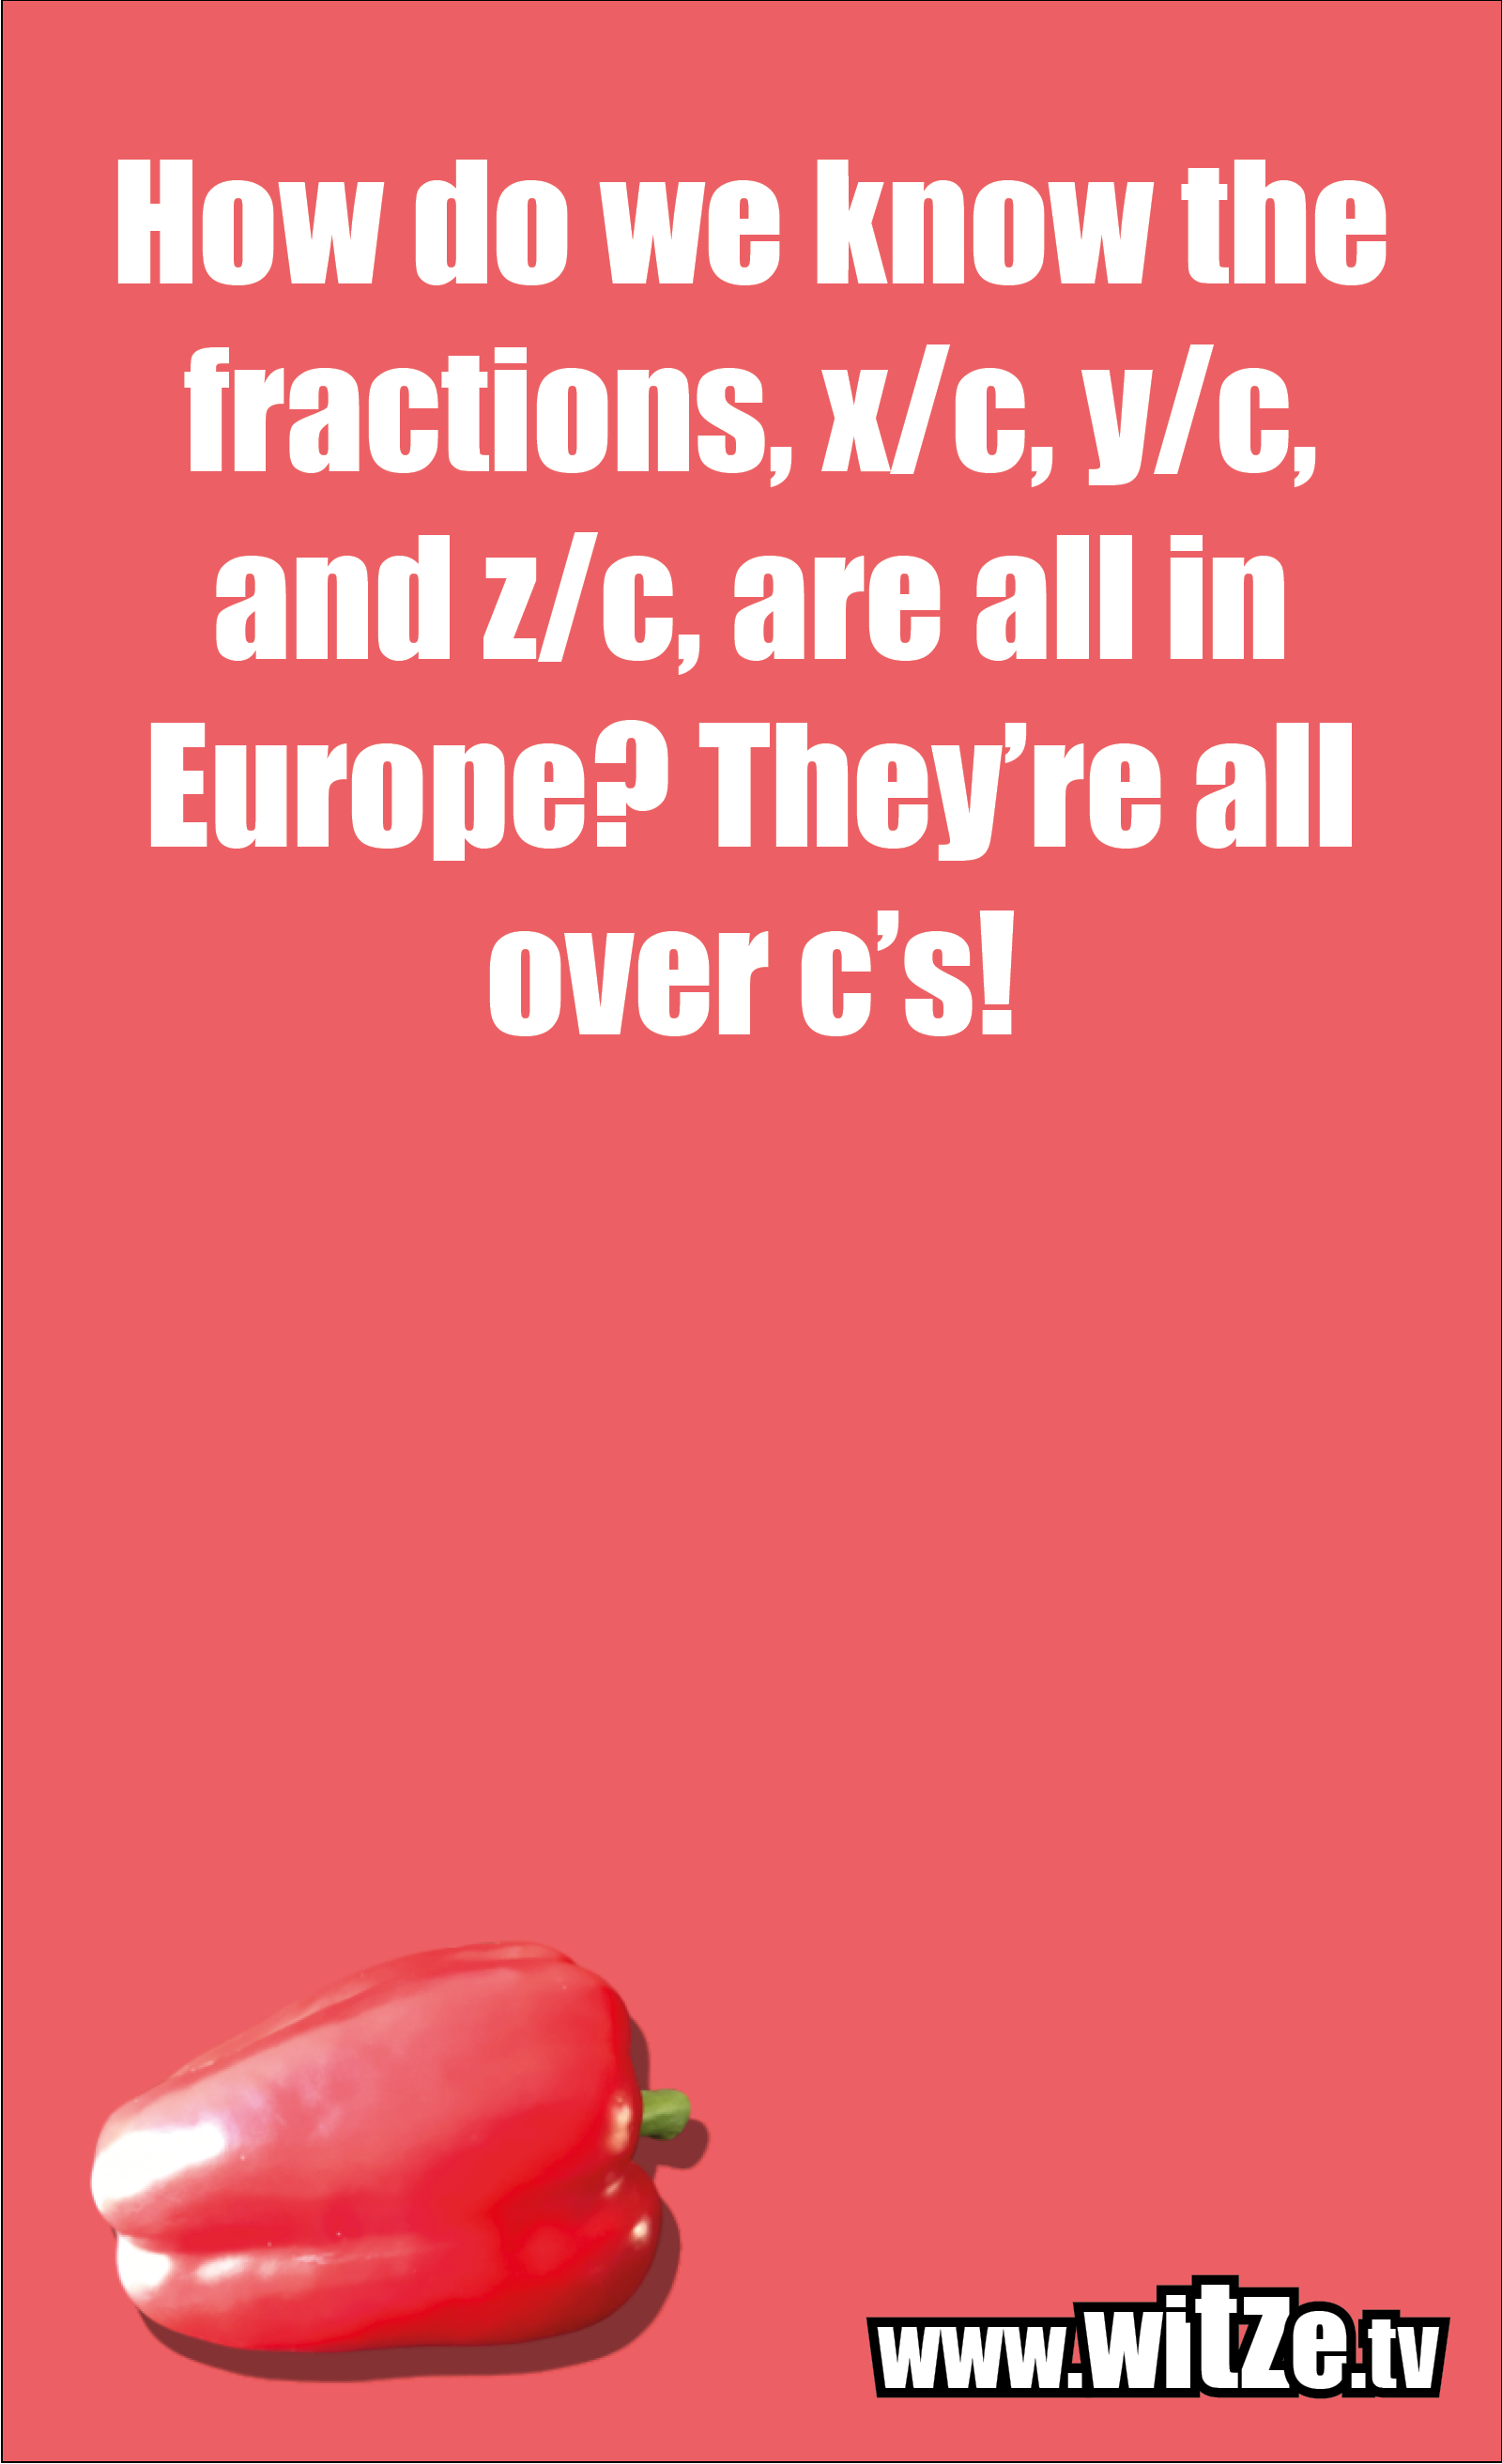 Math joke… How do we know the fractions, x/c, y/c, and z/c, are all in Europe? They're all over c's!